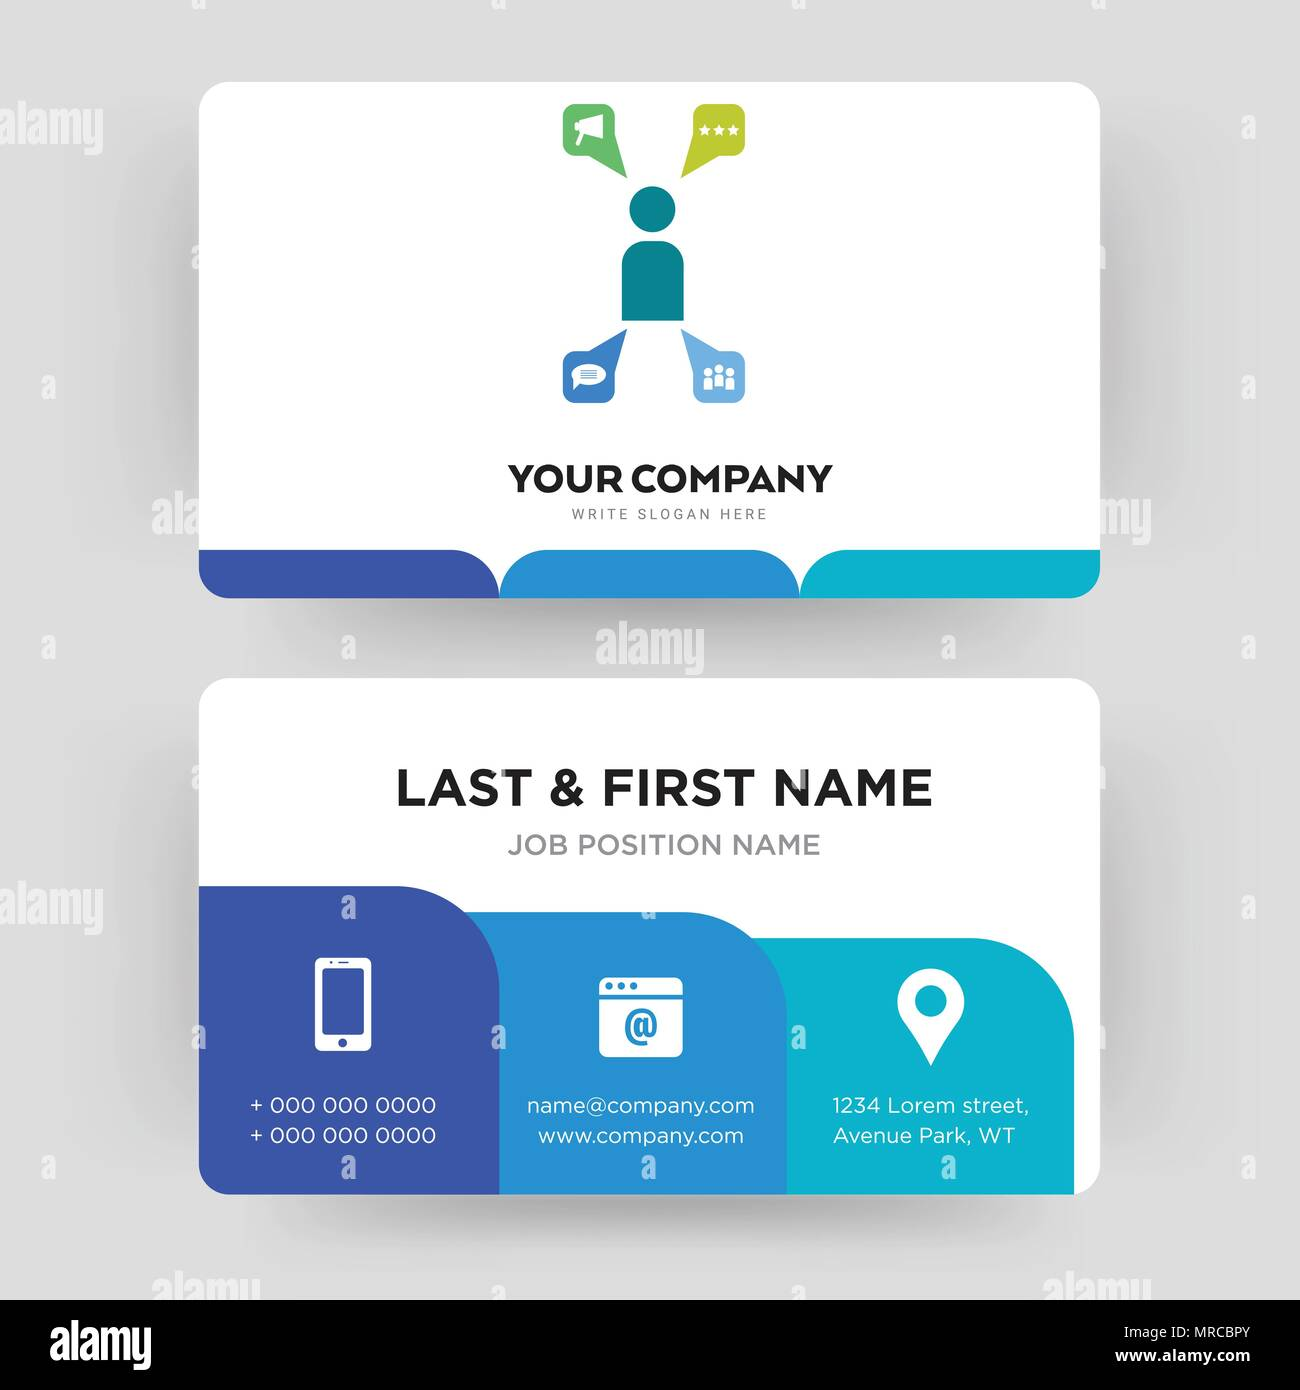 campaign management, business card design template, Visiting for ...